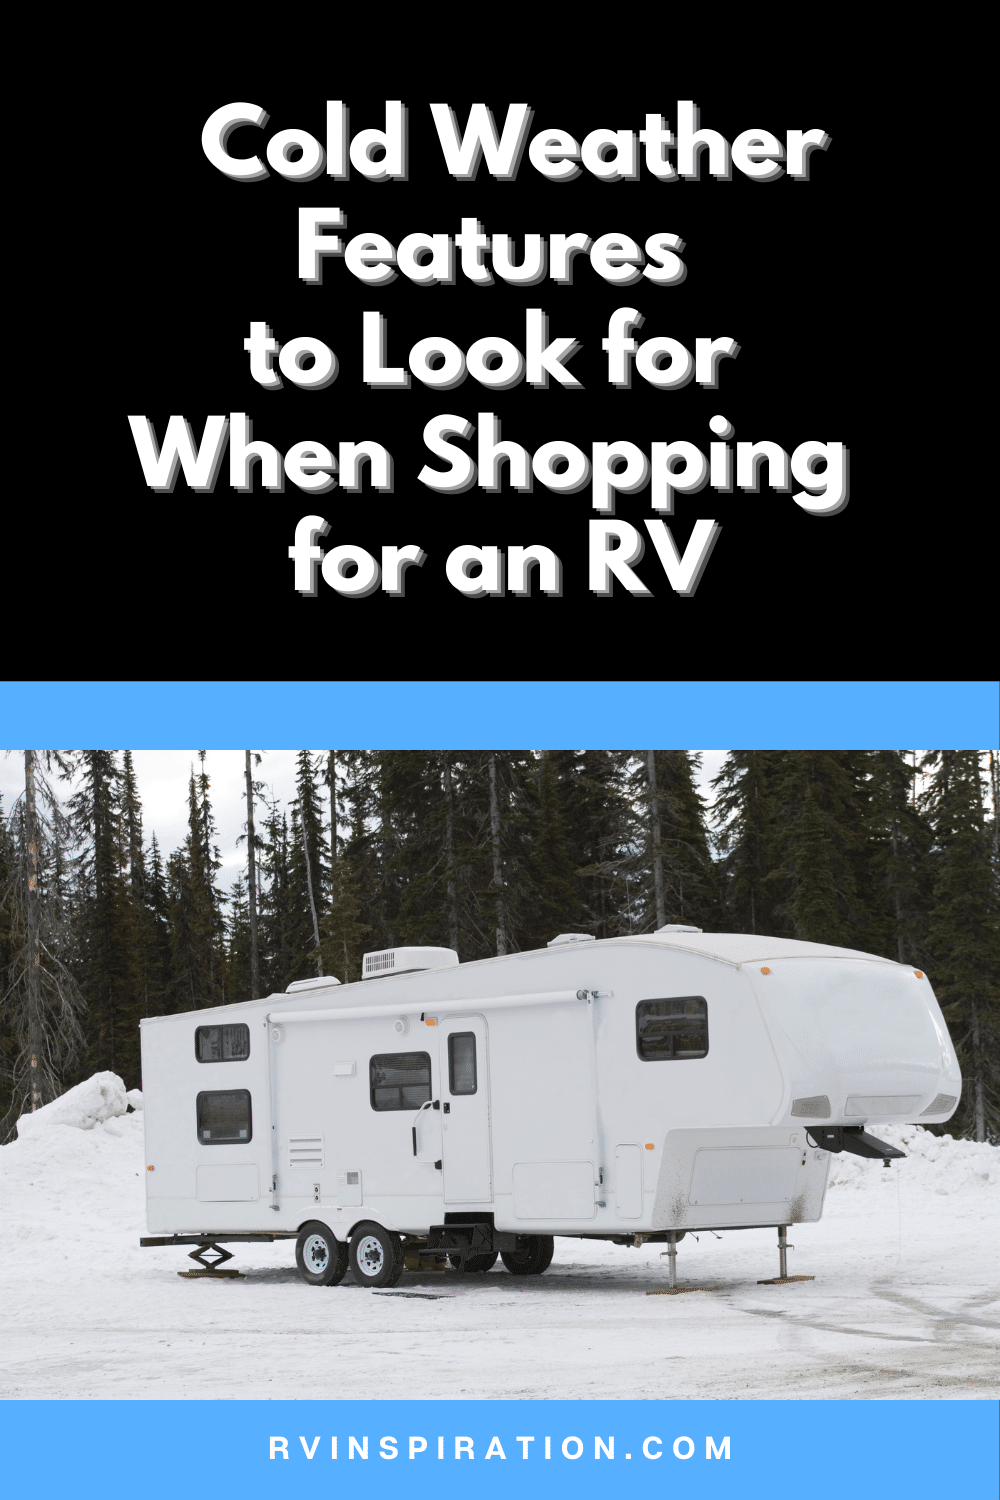 Four Season RV Features Pin Image 2